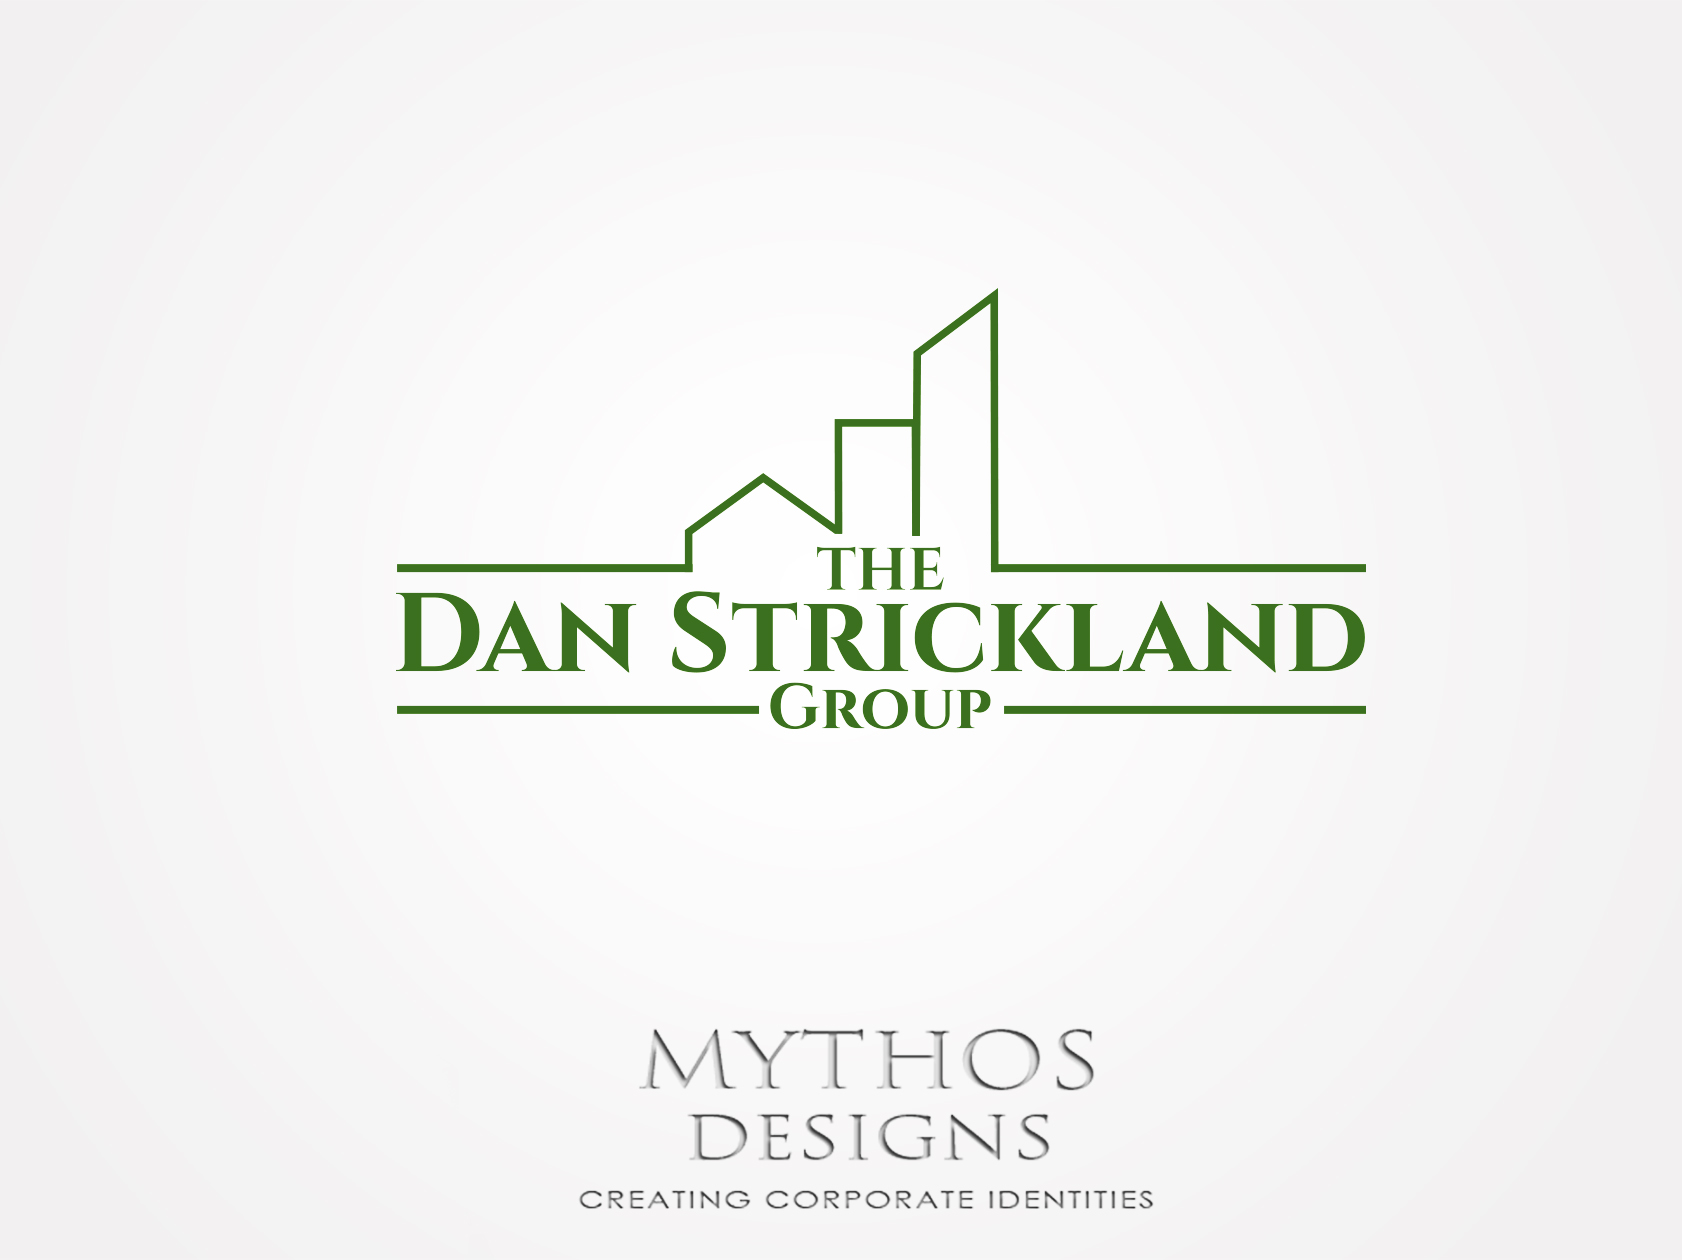 Logo Design by Mythos Designs - Entry No. 235 in the Logo Design Contest Creative Logo Design for The Dan Strickland Group.